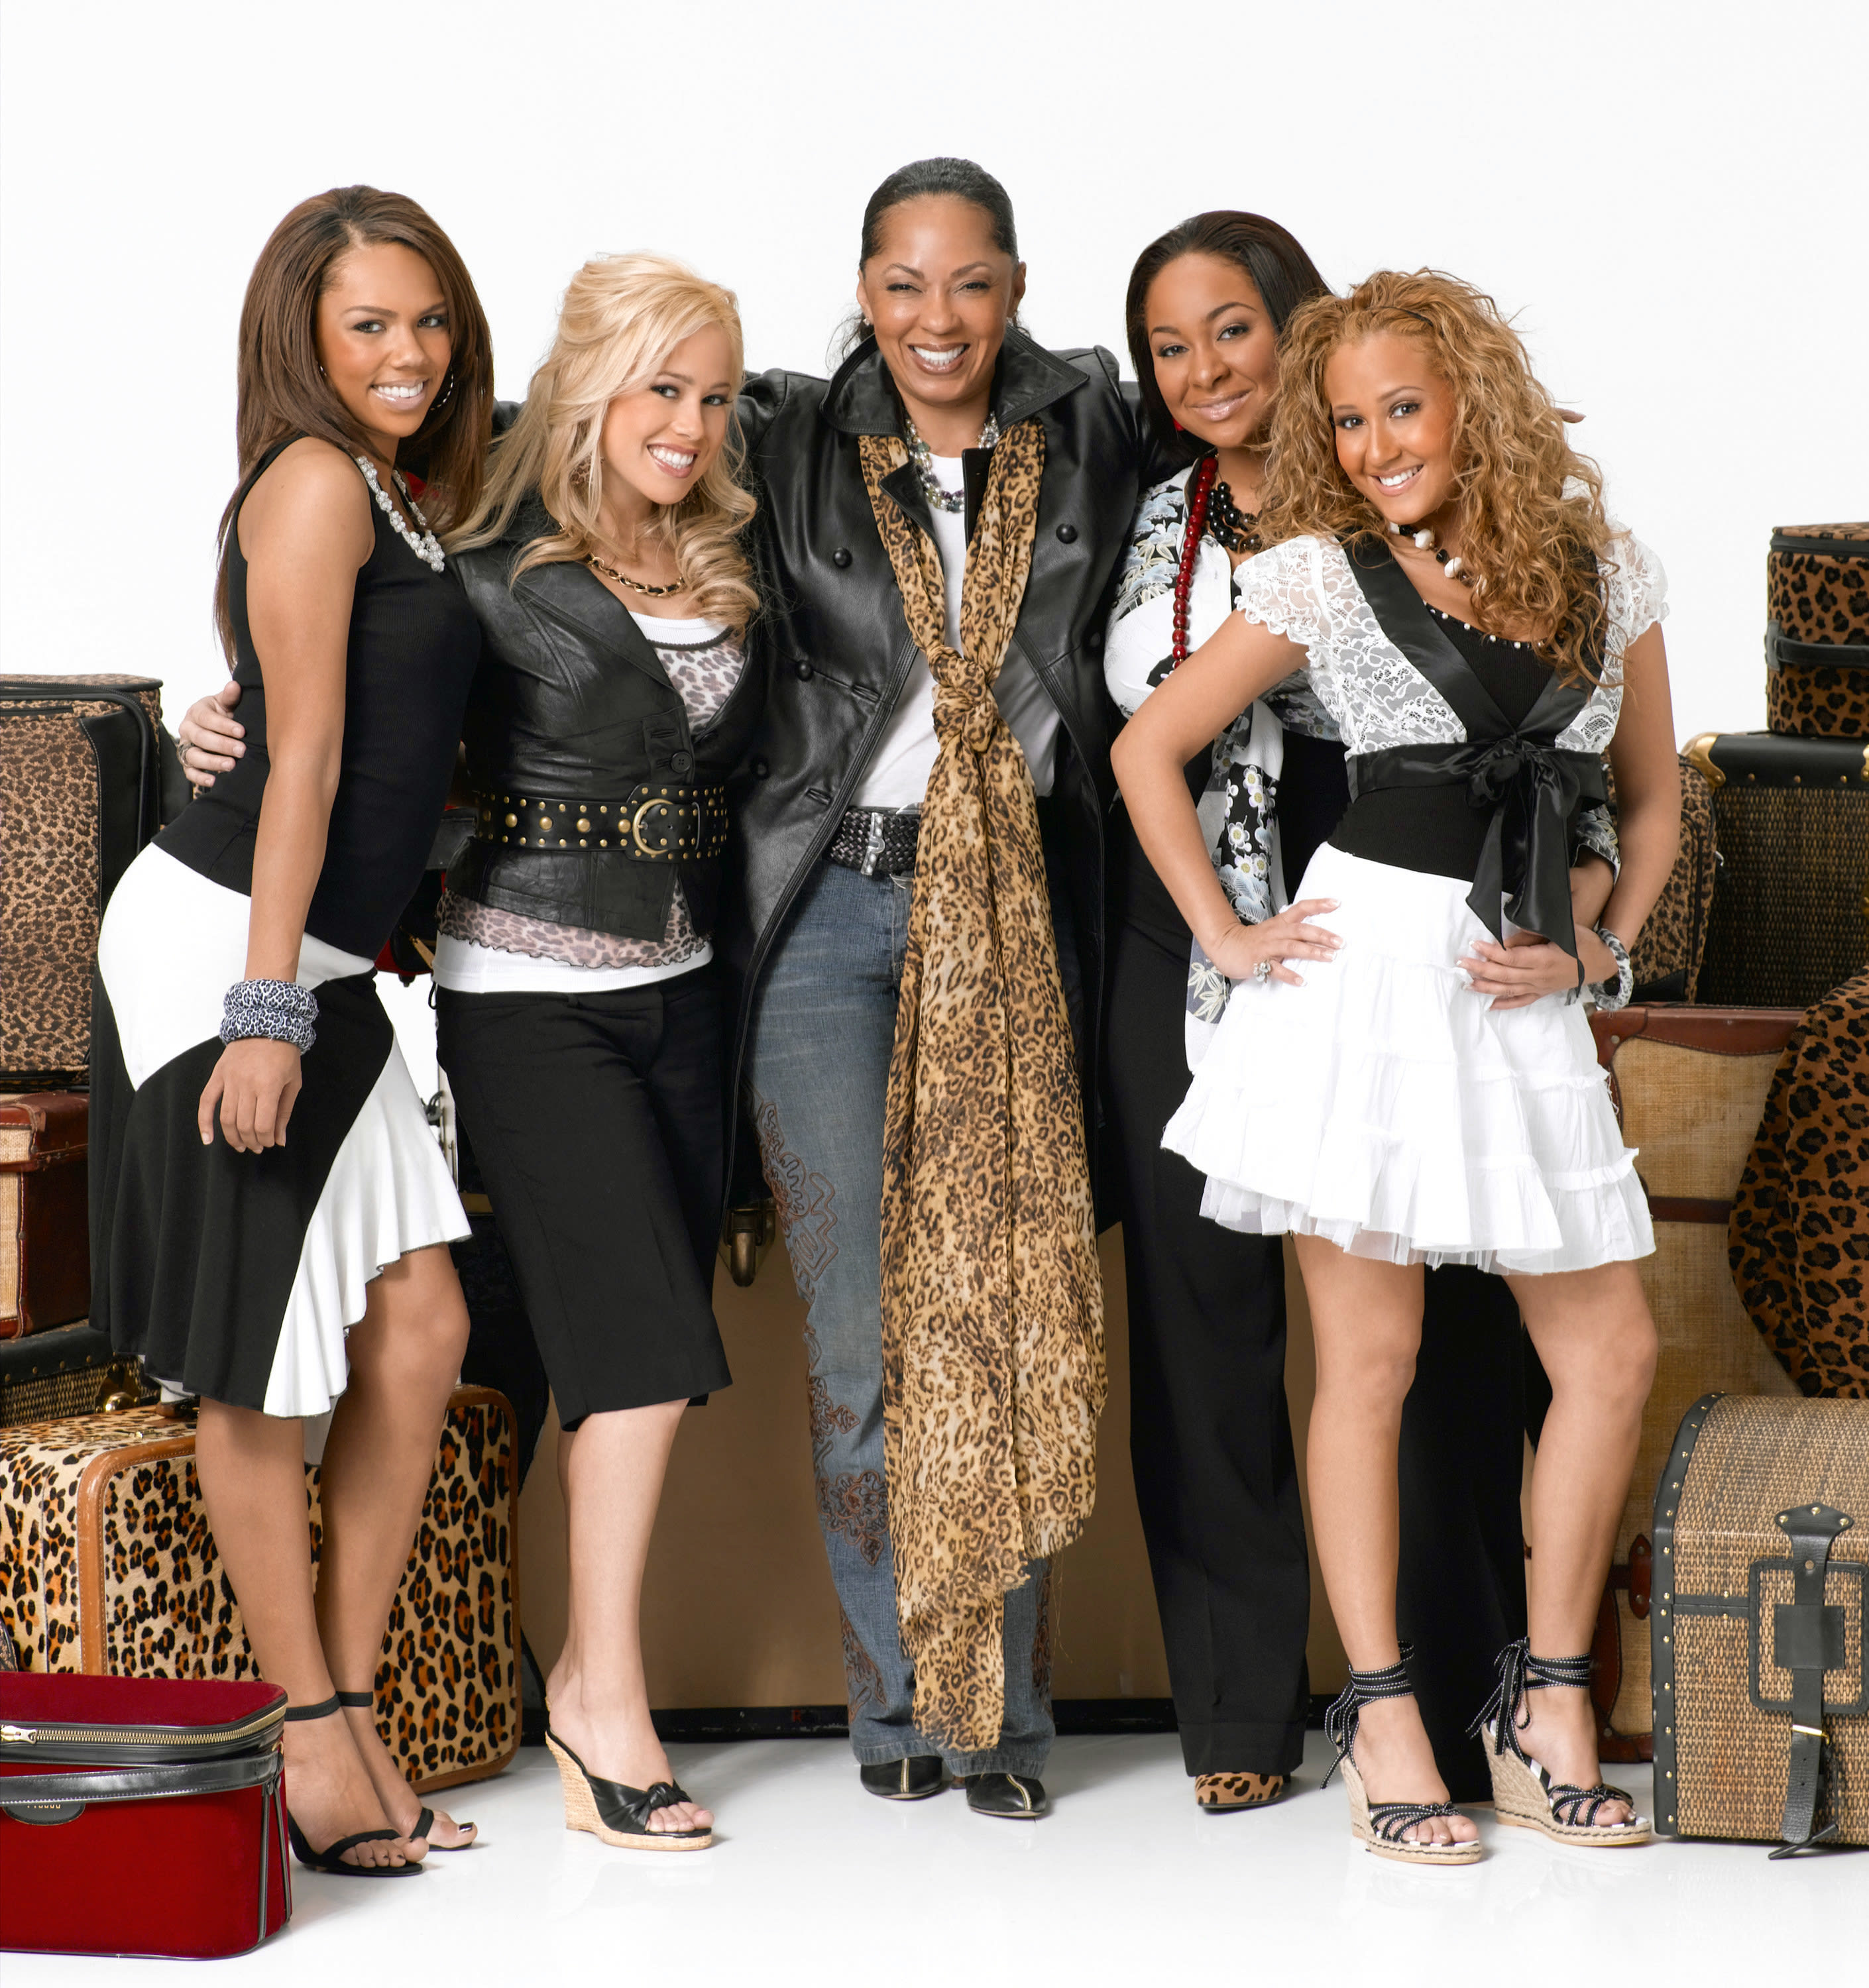 The cast of the second Cheetah Girls movie